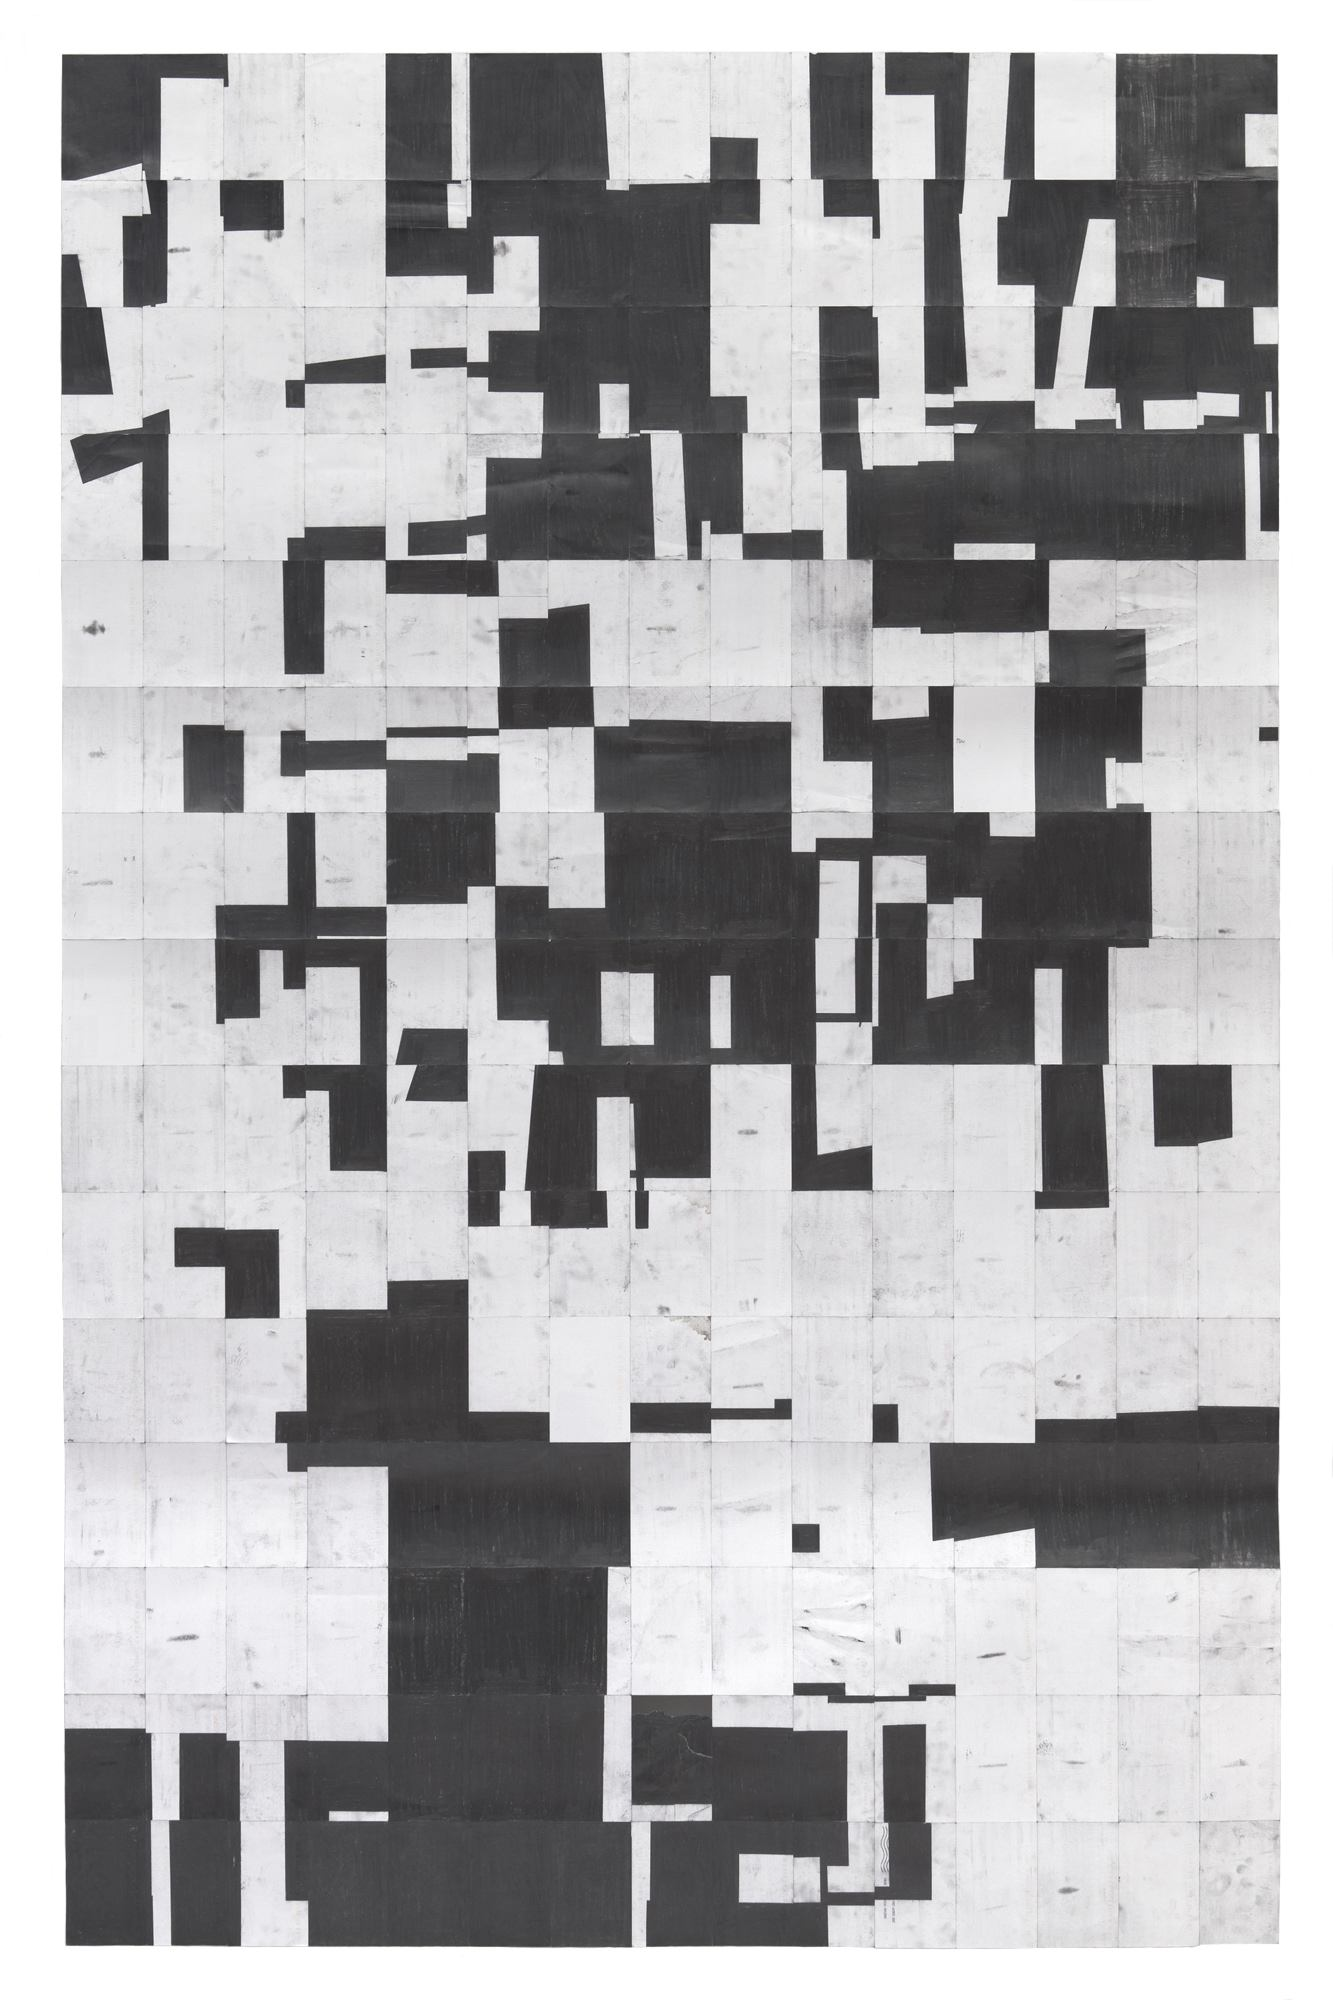 Agnes Lux, #L-W, 2012, Graphite on postcards, Overall: 82 5/8 x 52 1/8 in.